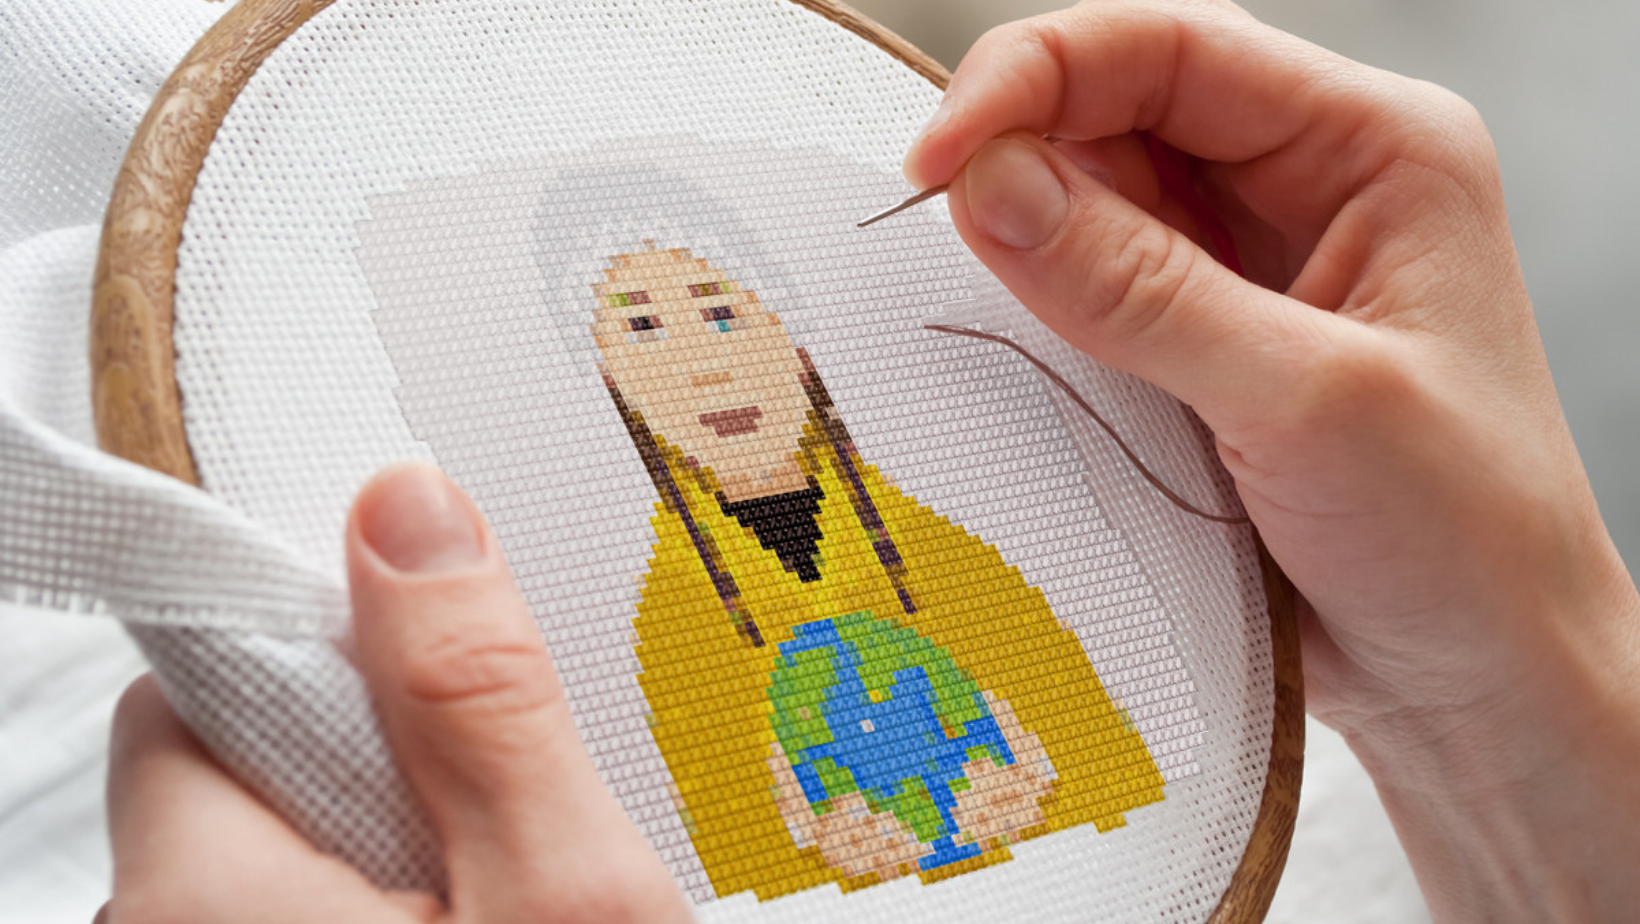 Craftivism 101 with Bad Ass Cross Stitch - Feminist Icons